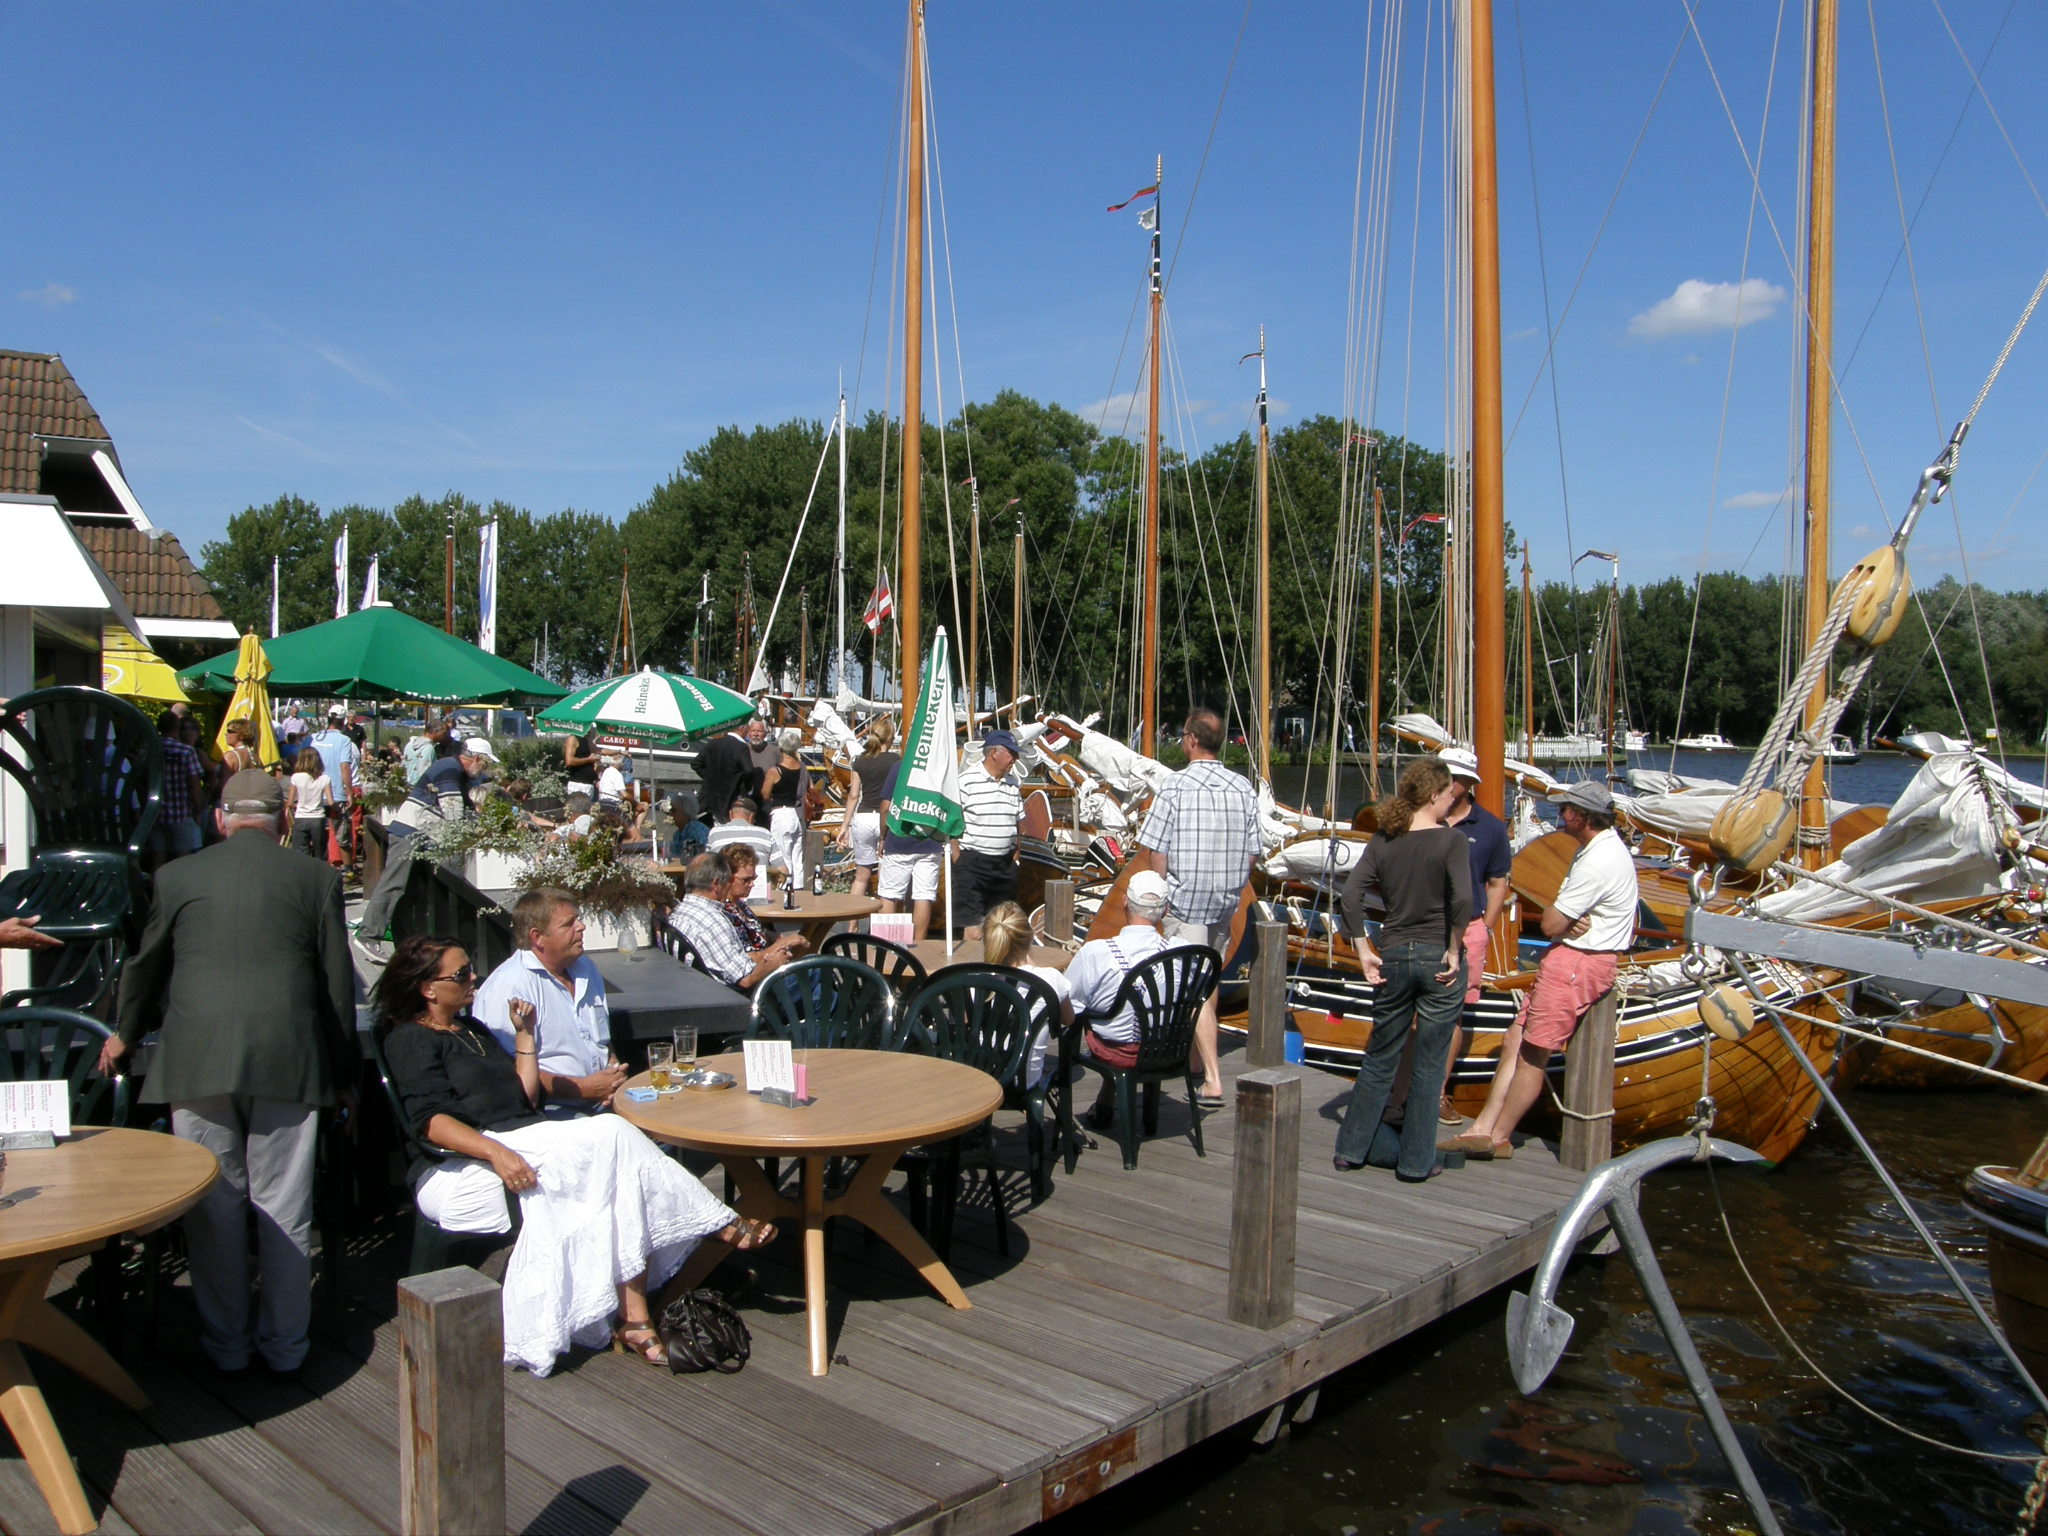 De-Veenhoop-Friesland-Patiomarina